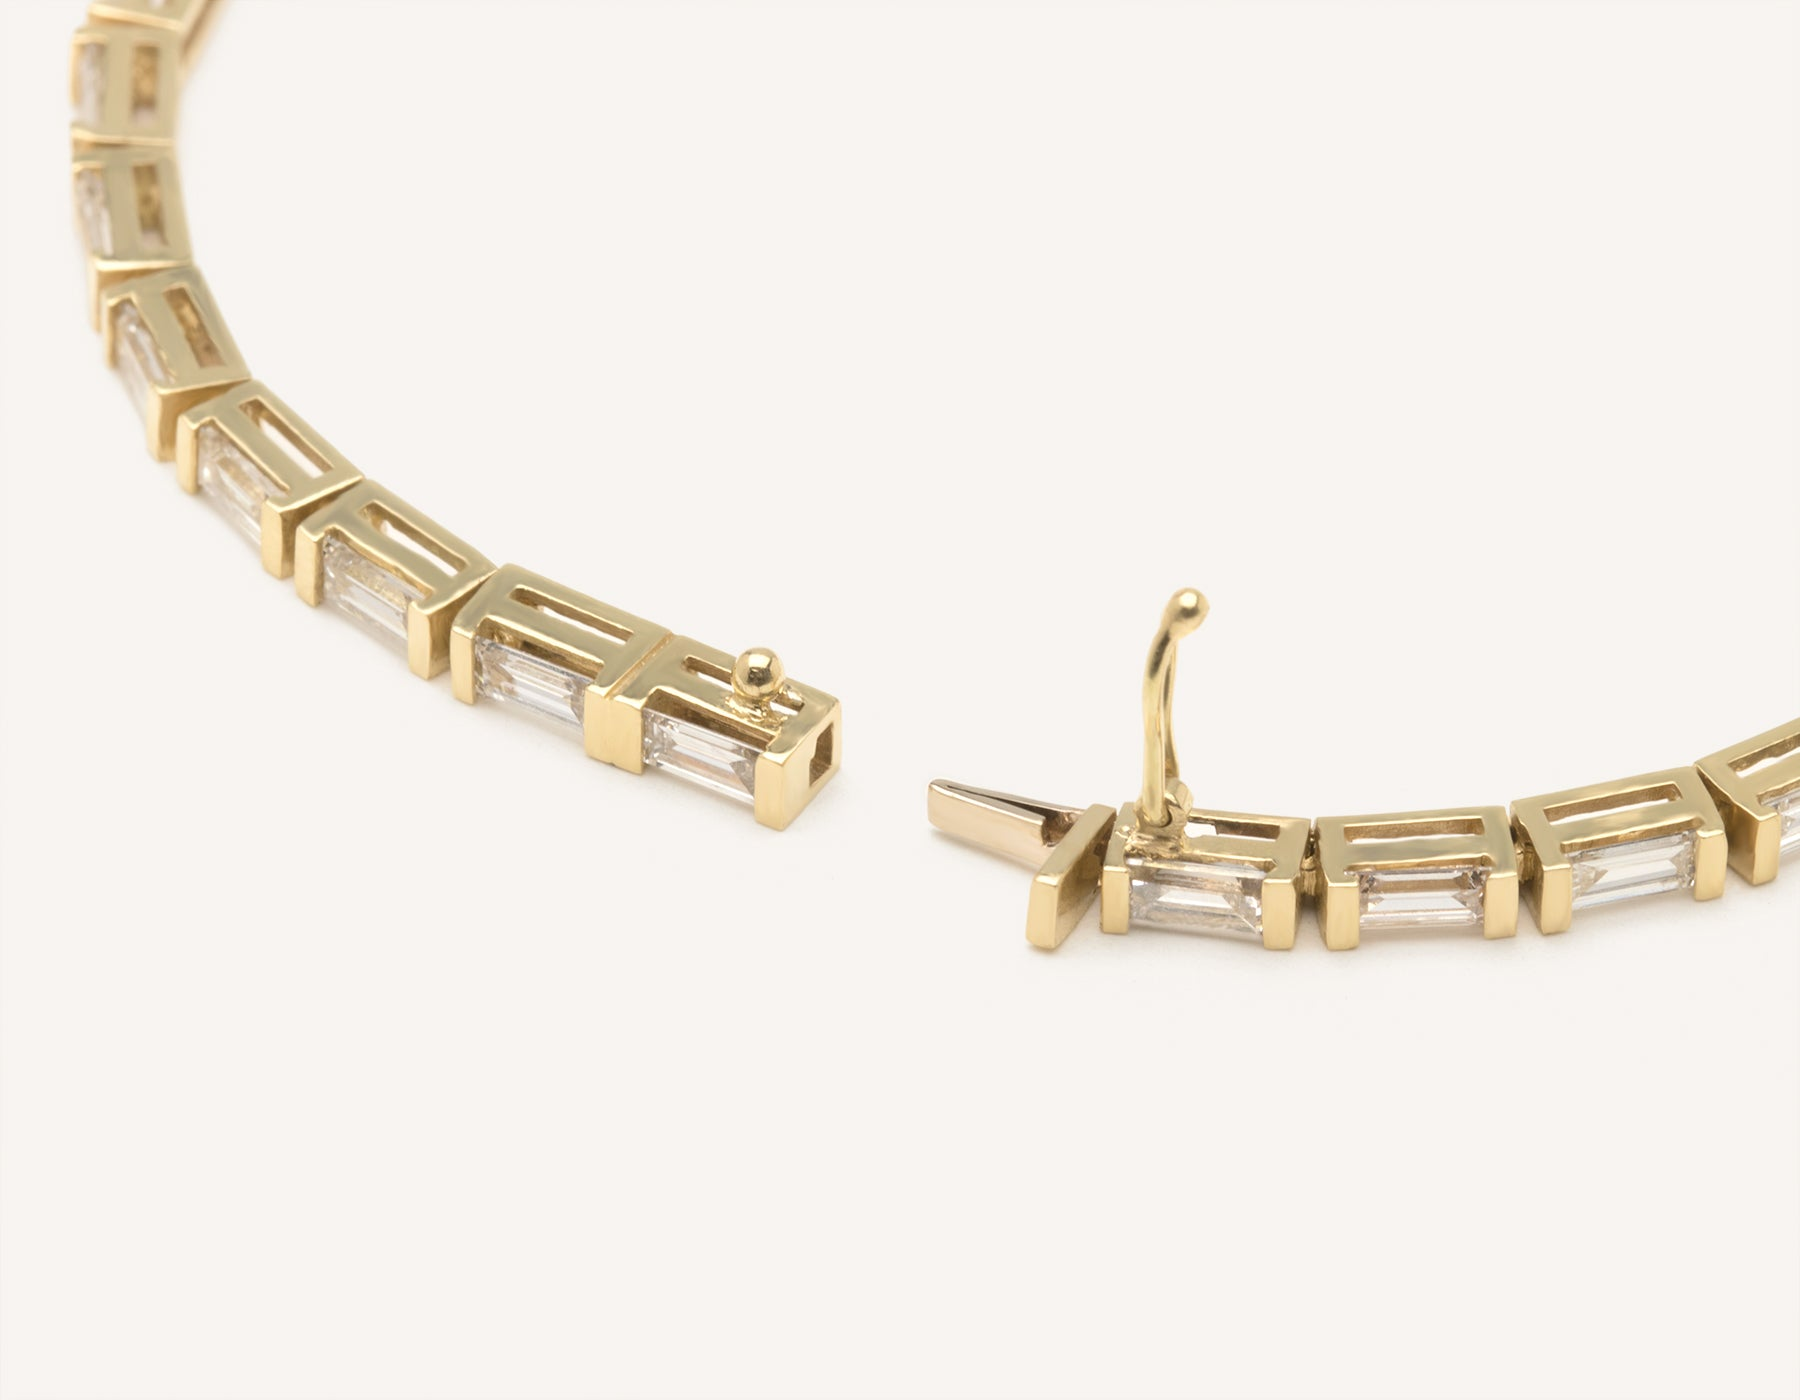 Sleek modern 18k solid gold Baguette Diamond Tennis Bracelet secure clasp handcrafted by Vrai & Oro, 18K Yellow Gold